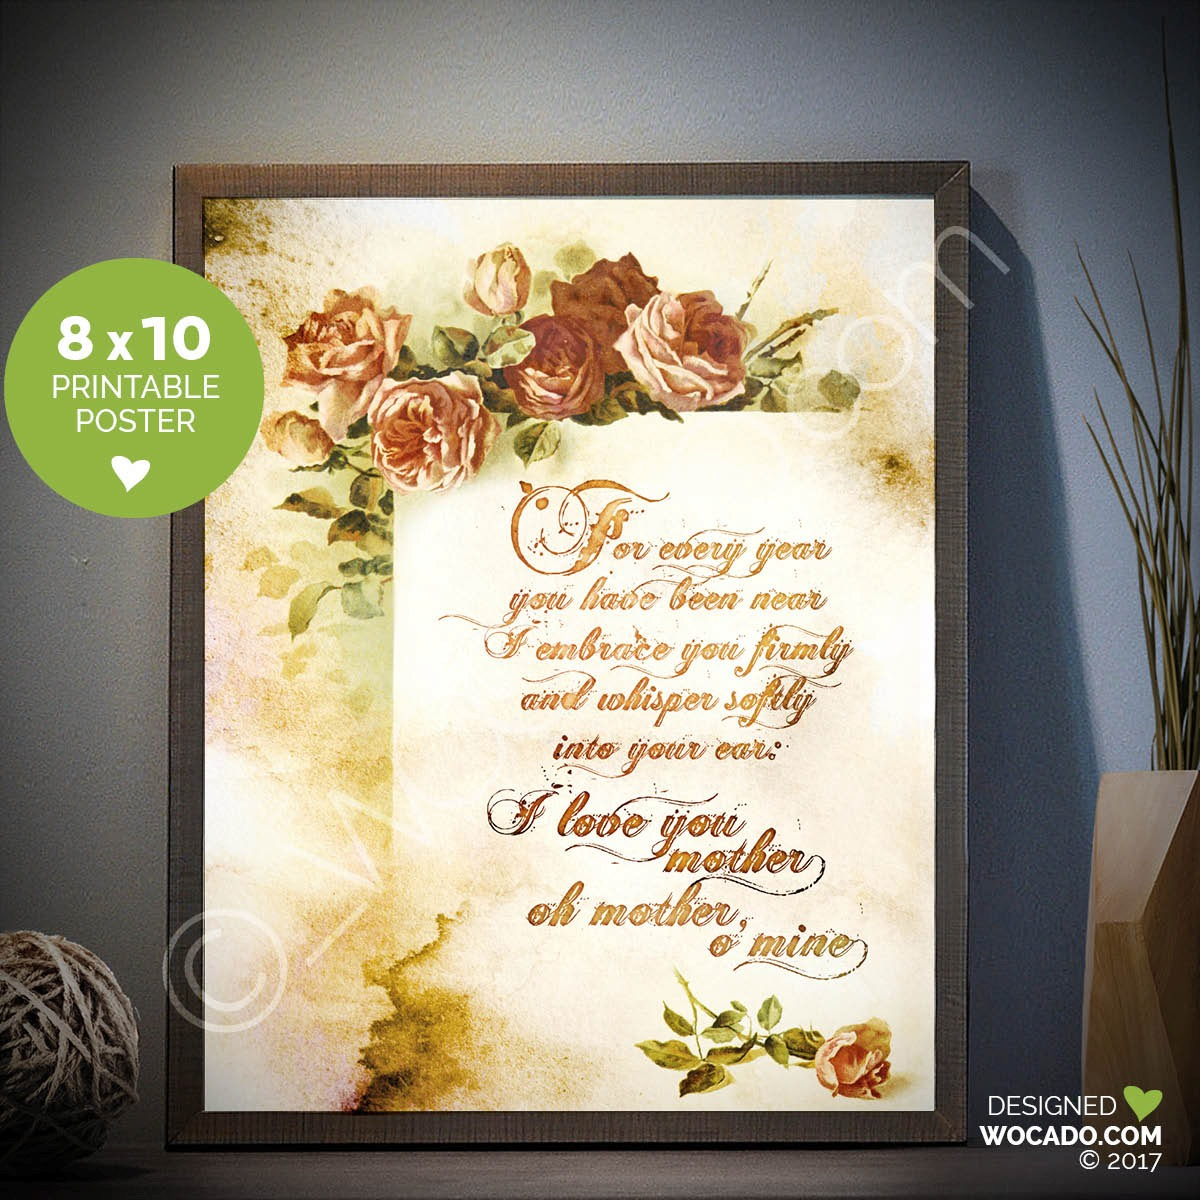 Oh Mother O' Mine - 8x10 Printable by WOCADO